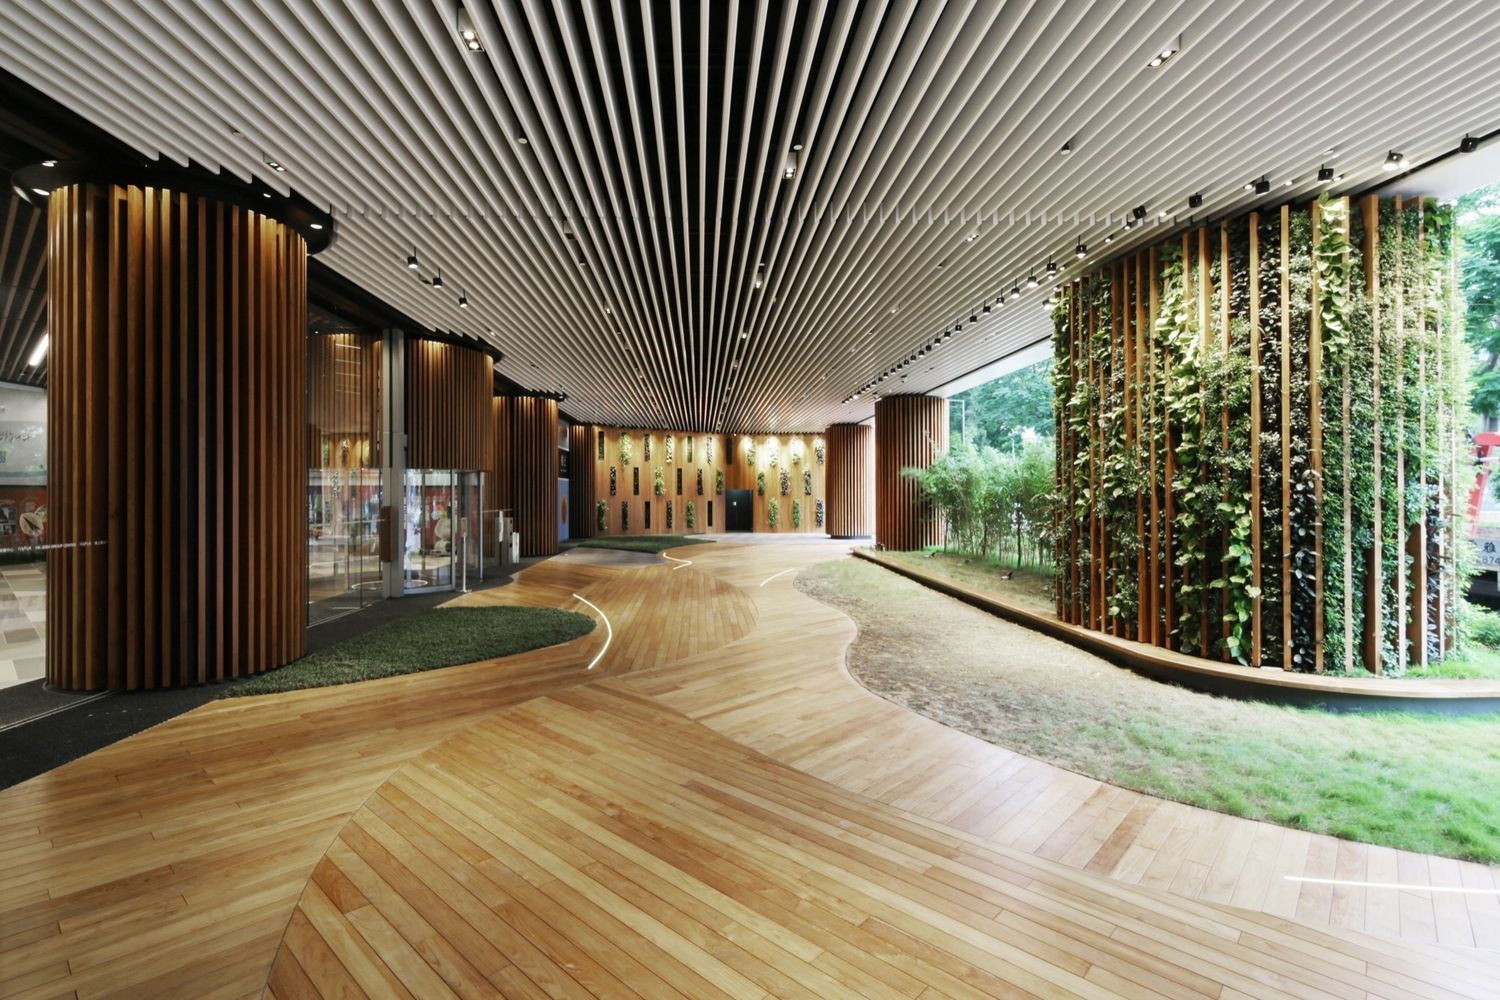 Gallery of Office Lobby / 4N design architects - 1 | Design ...